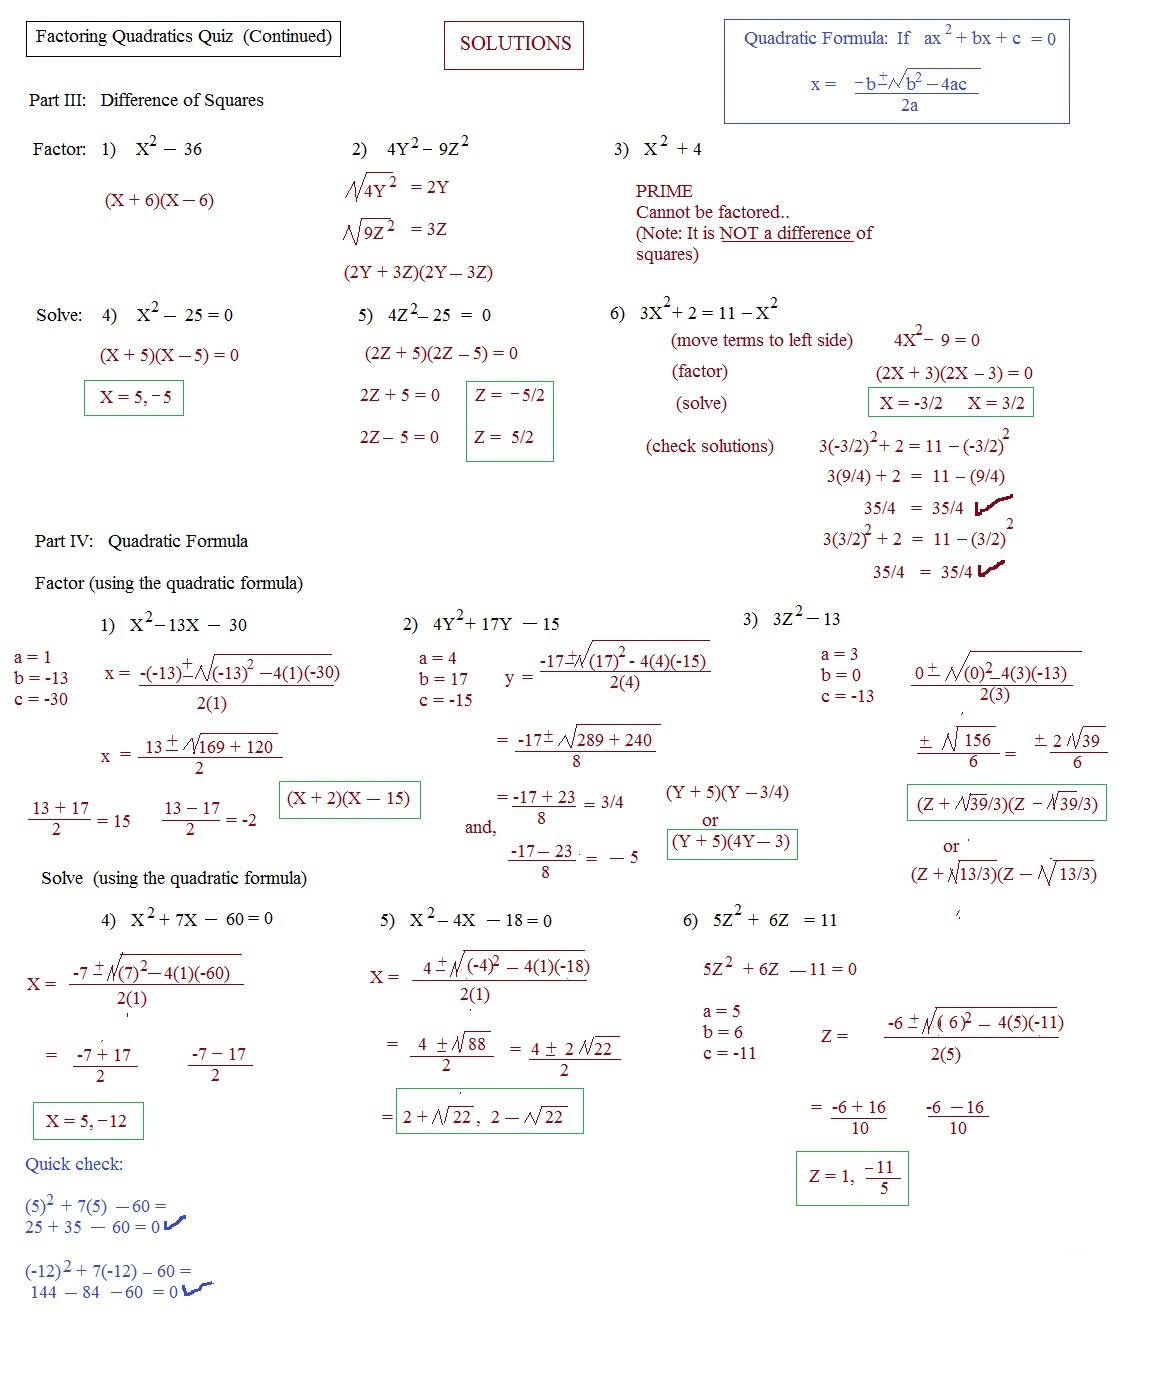 Quadratic Formula Worksheet Easy